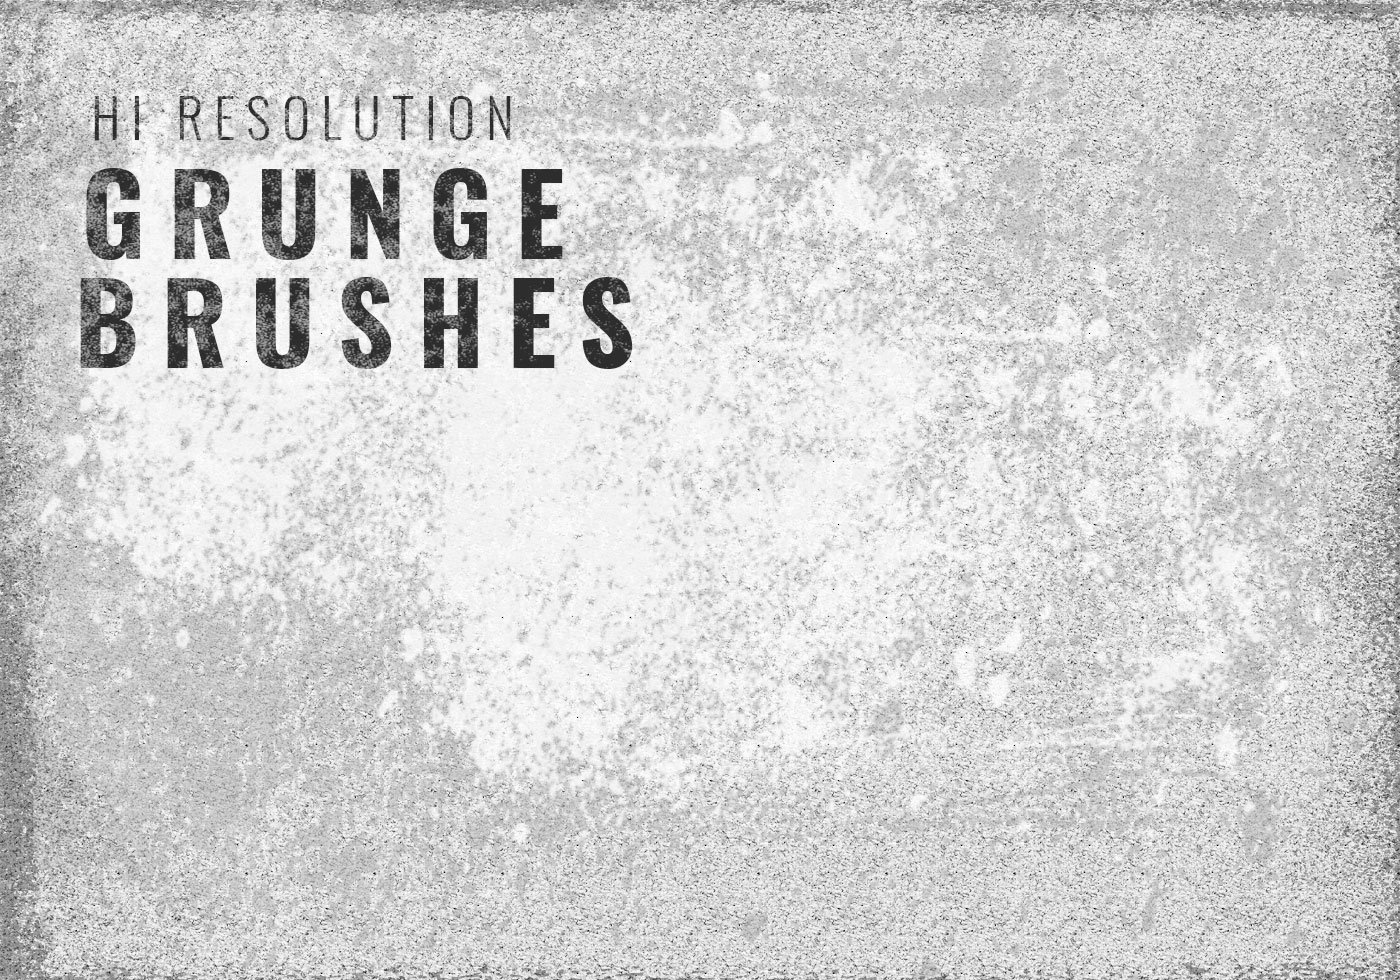 Rough Free Brushes - (2,407 Free Downloads)